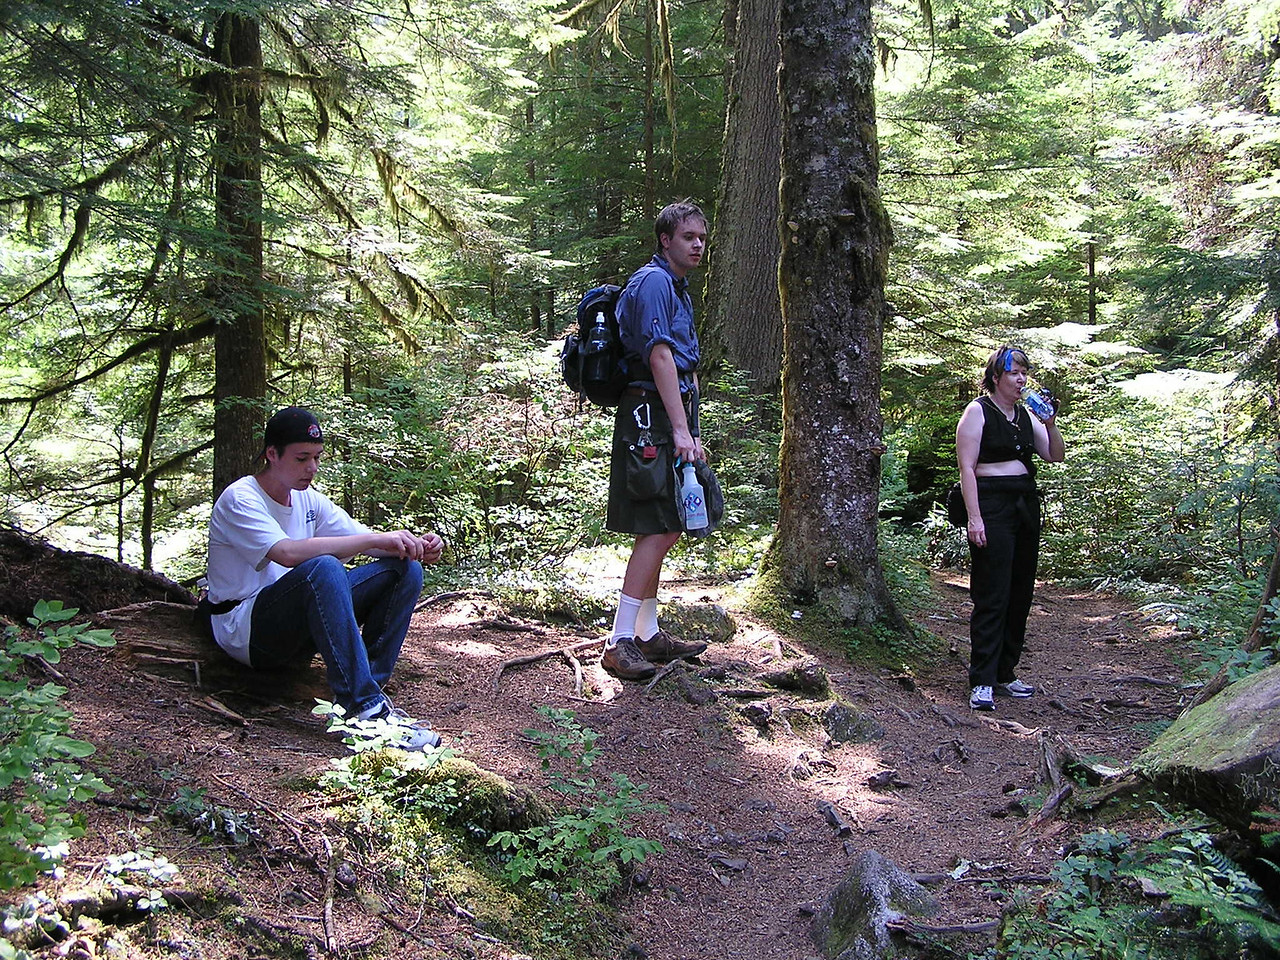 04-08-16 Hike to Trout Lake 021